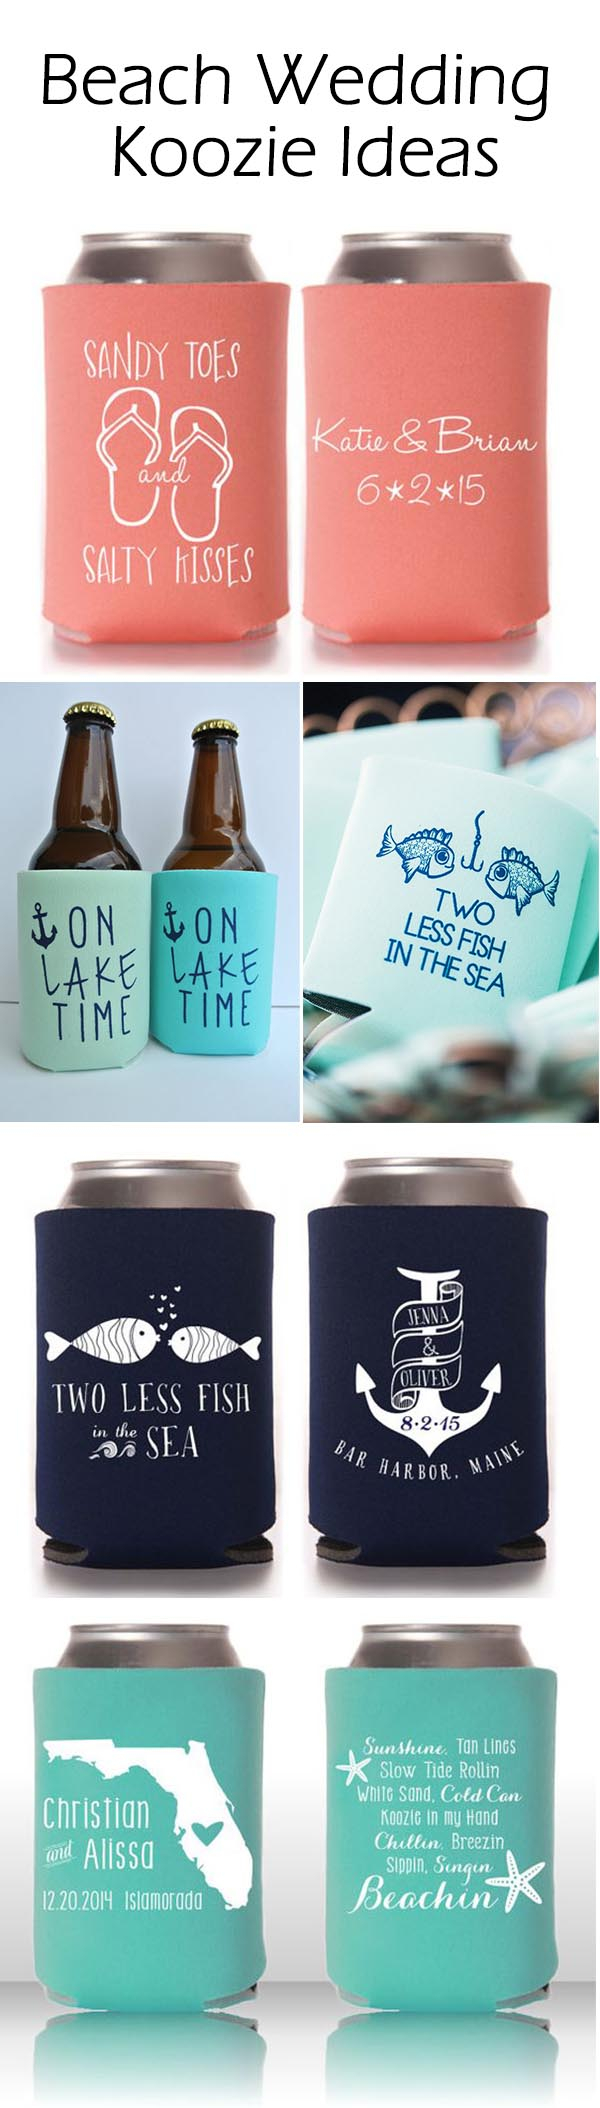 Koozie Ideas Wedding Cool Summer Wedding Ideas With Personalized Koozie Favors